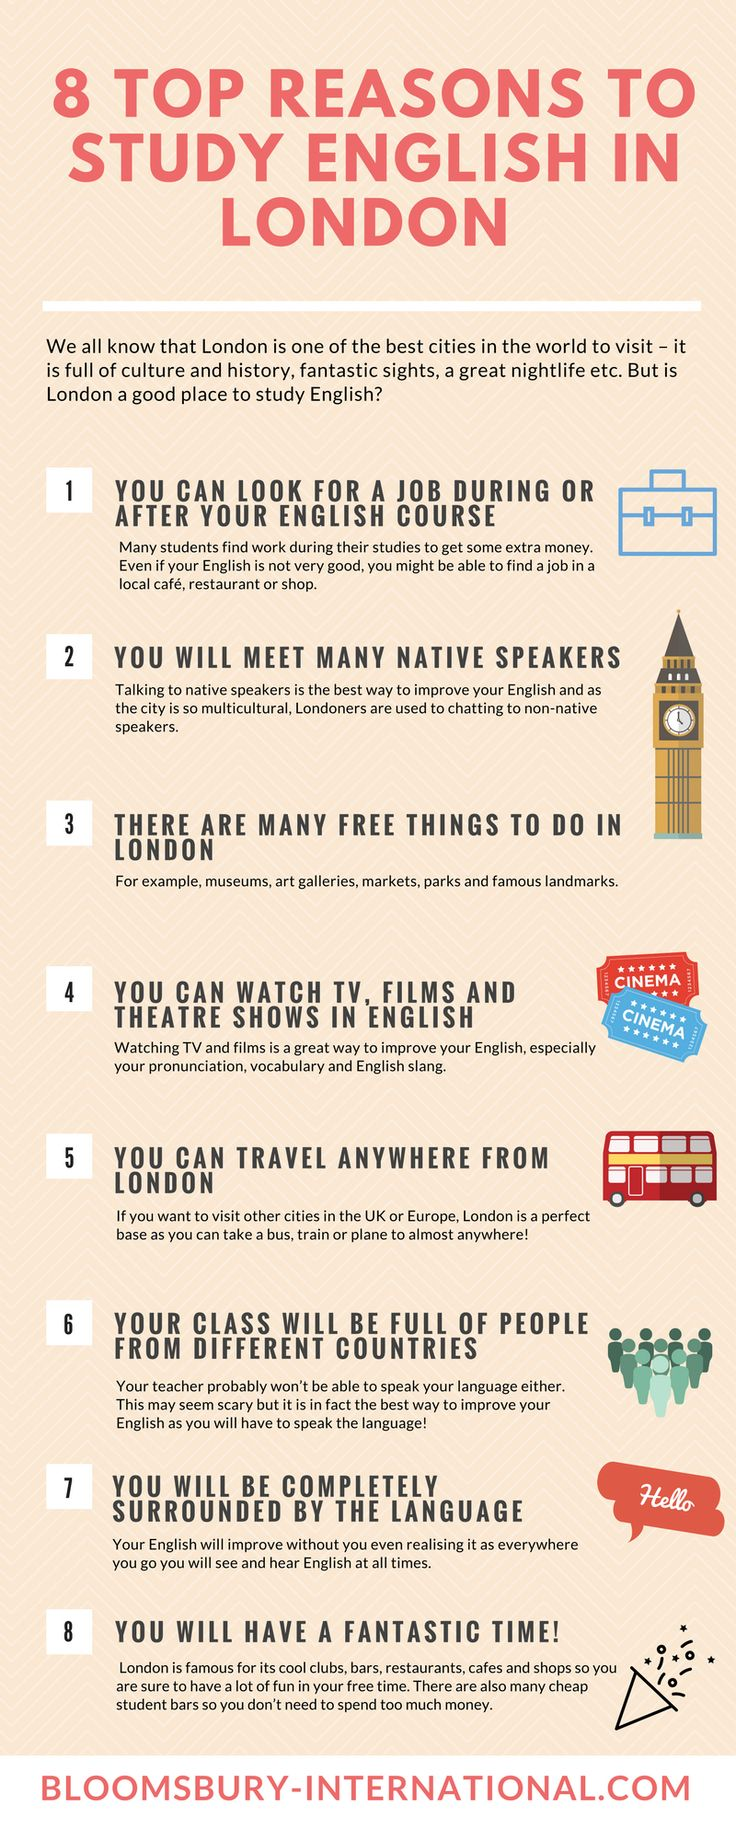 8 Top Reasons to Study English in the UK #infographic http://bit.ly/2mvUxoF